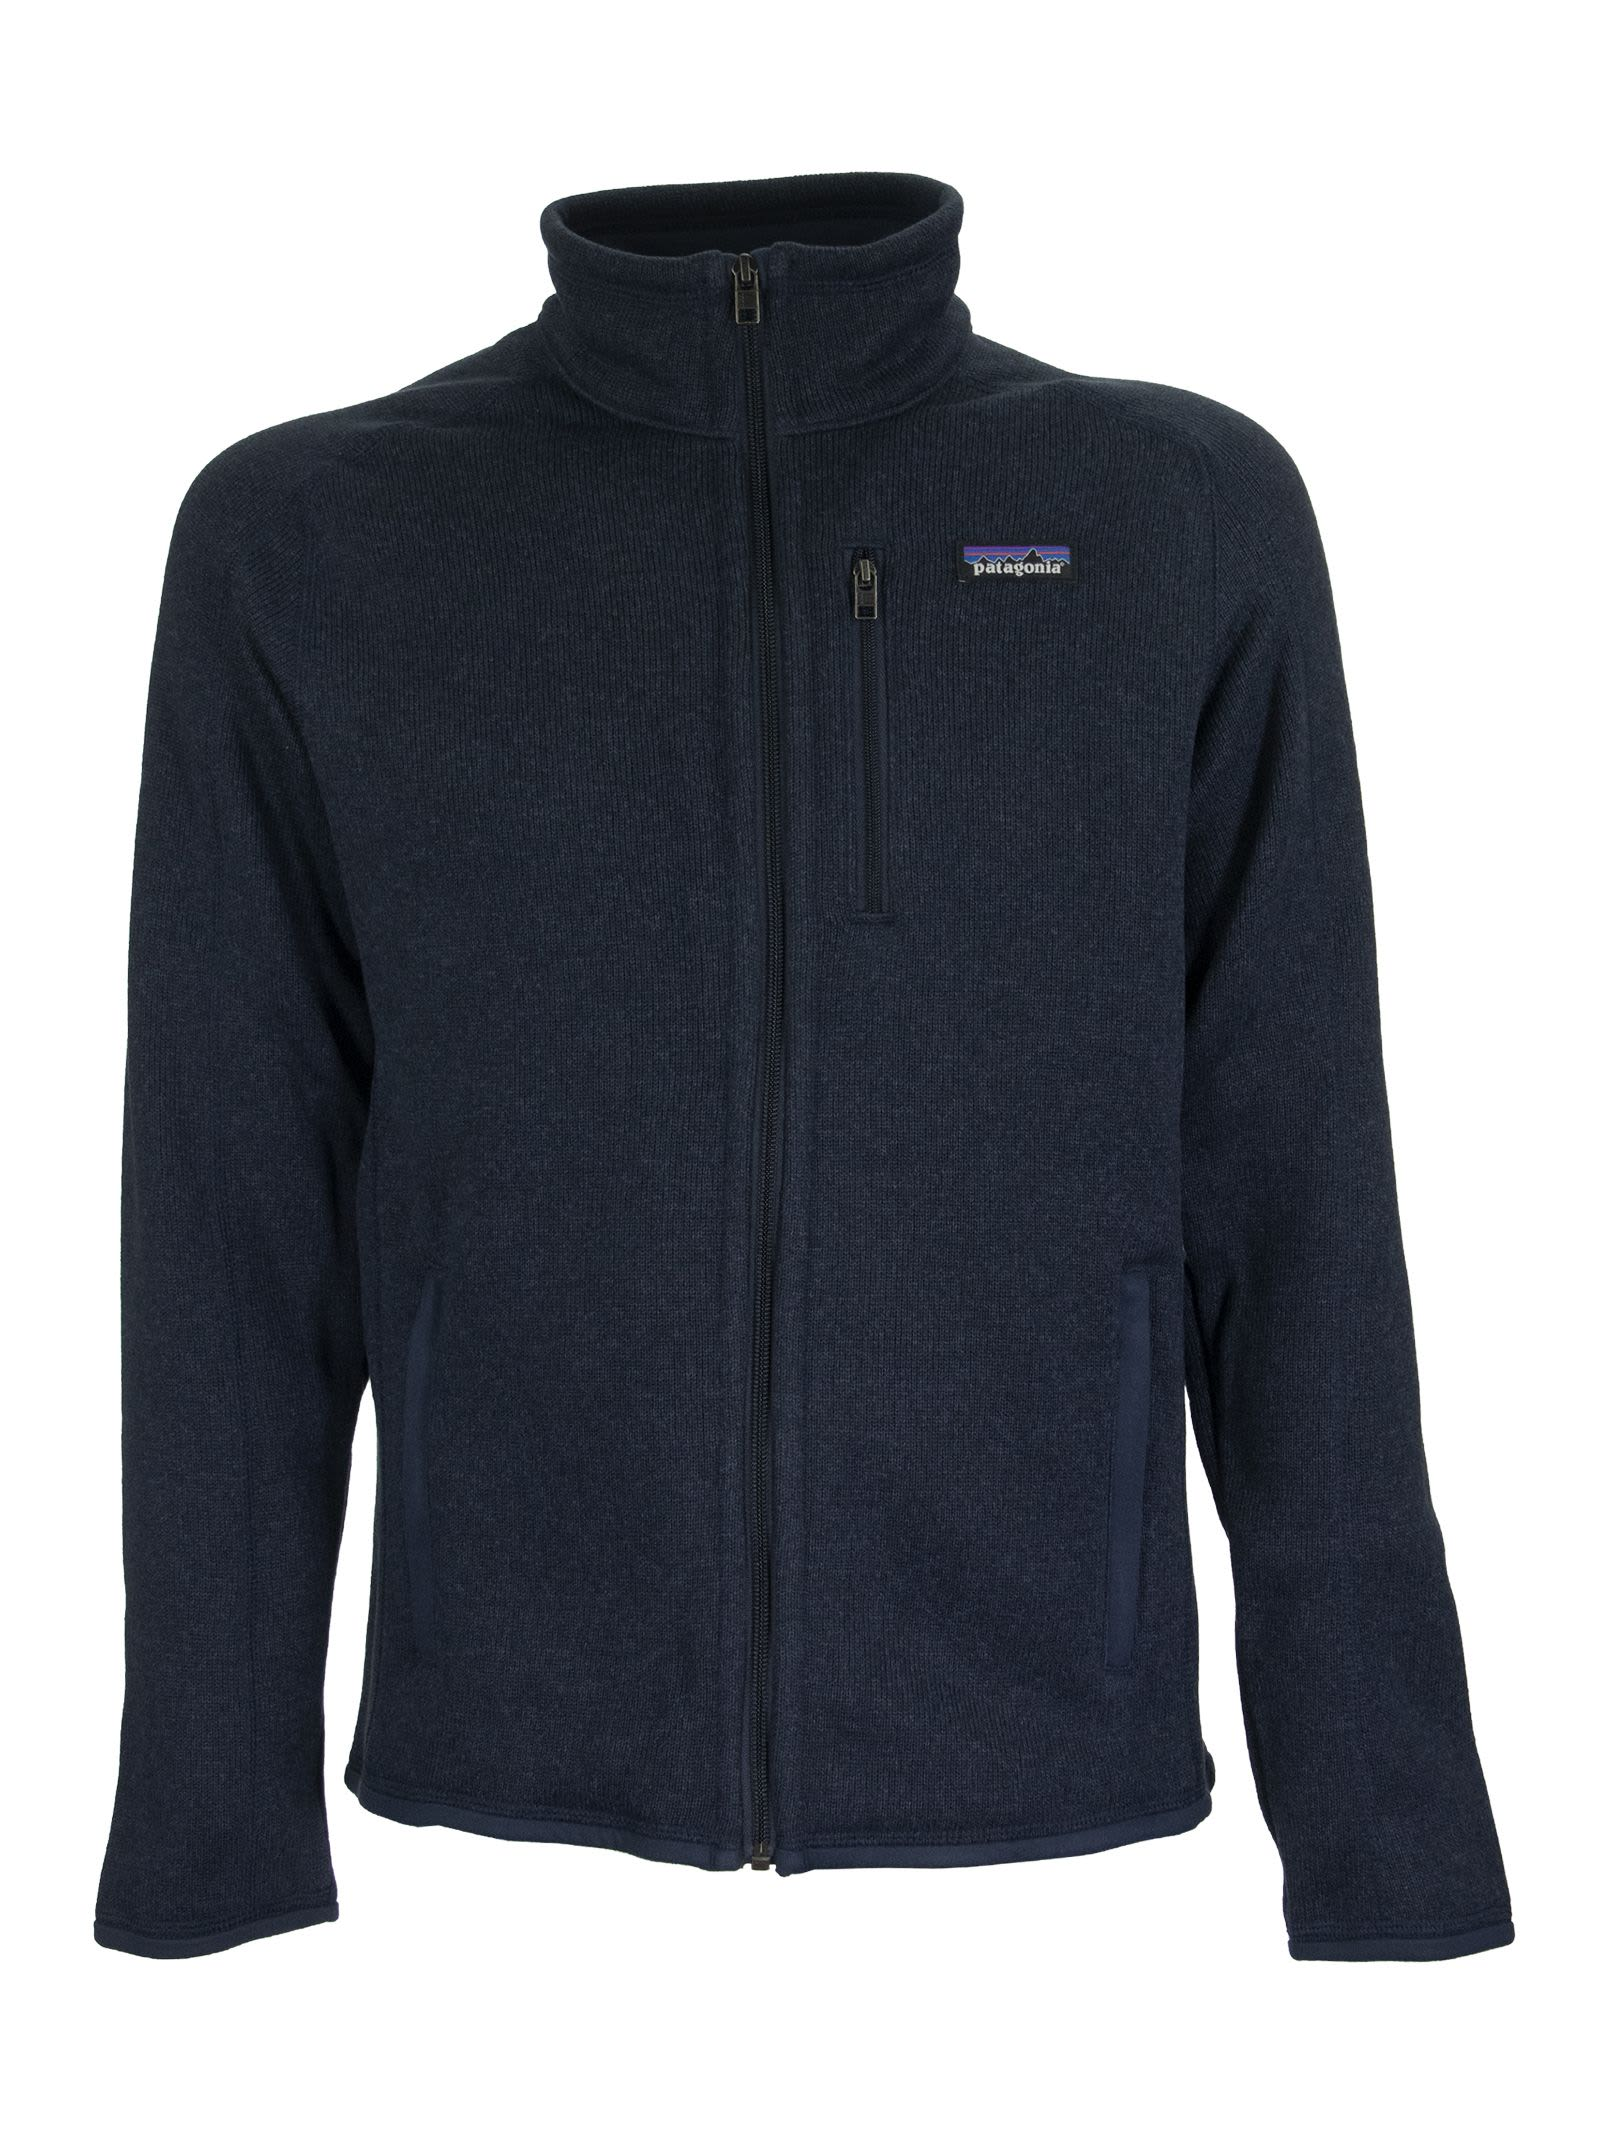 A warm, low-bulk full-zip jacket made with soft, sweater-knit recycled polyester fleece. Fair Trade Certified sewn. Made of 100% recycled polyester fleece with a sweater-knit face, fleece interior and heathered yarns; dyed with a low-impact process that significantly reduces the use of dyestuffs, energy and water compared to conventional dyeing methods. The Full-zip design features a zip-through stand-up collar for warmth and soft comfort on your neck. Raglan sleeves for mobility and pack-wearin